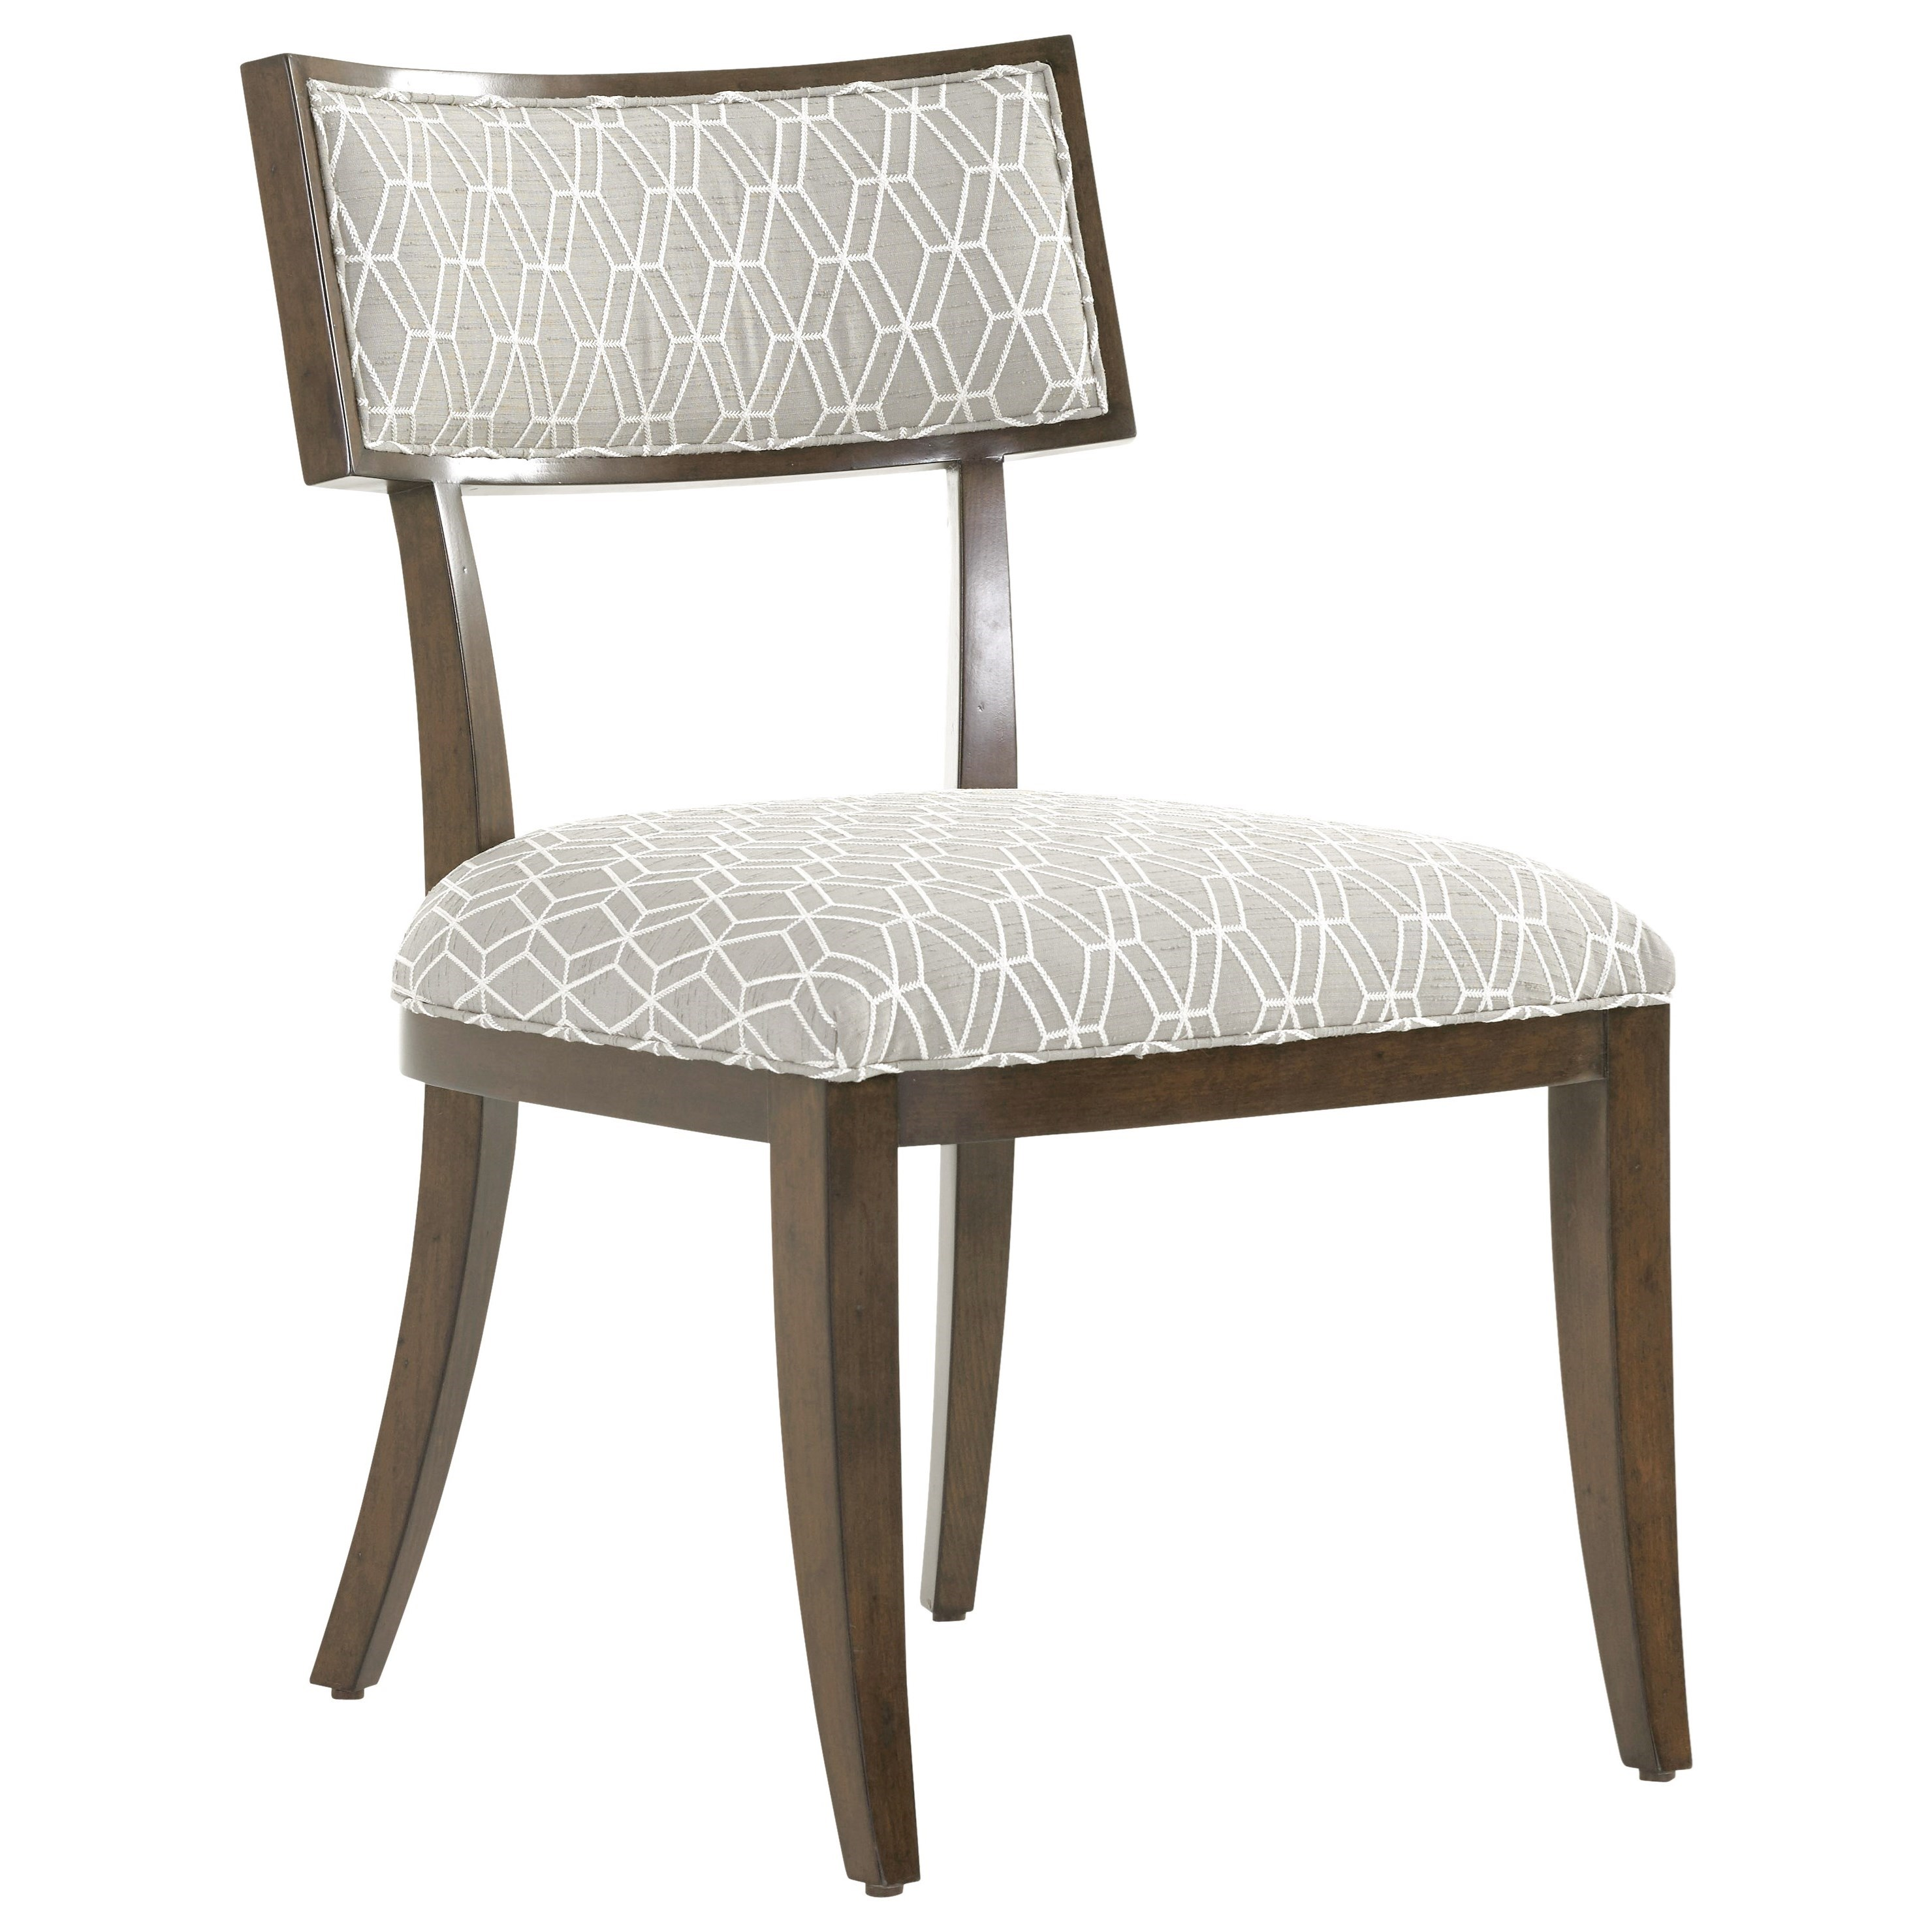 MacArthur Park Whittier Side Chair in Custom Fabric by Lexington at Johnny Janosik